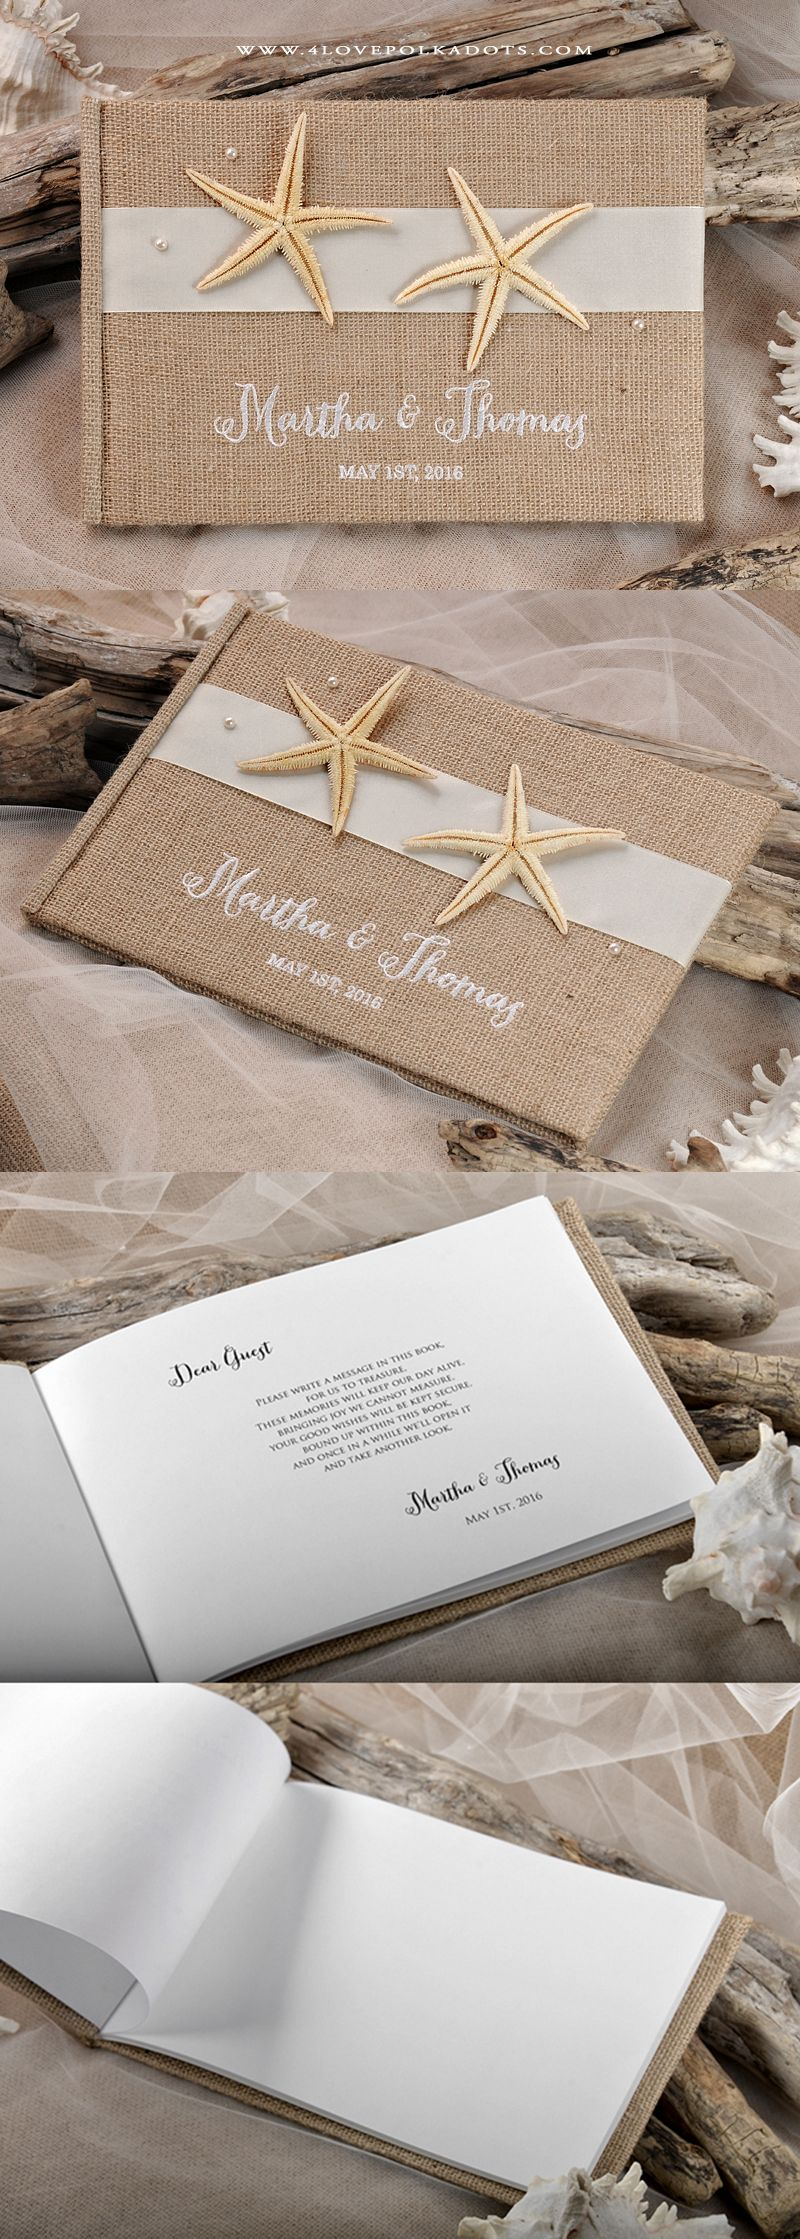 best images about beach wedding project on pinterest jasmine